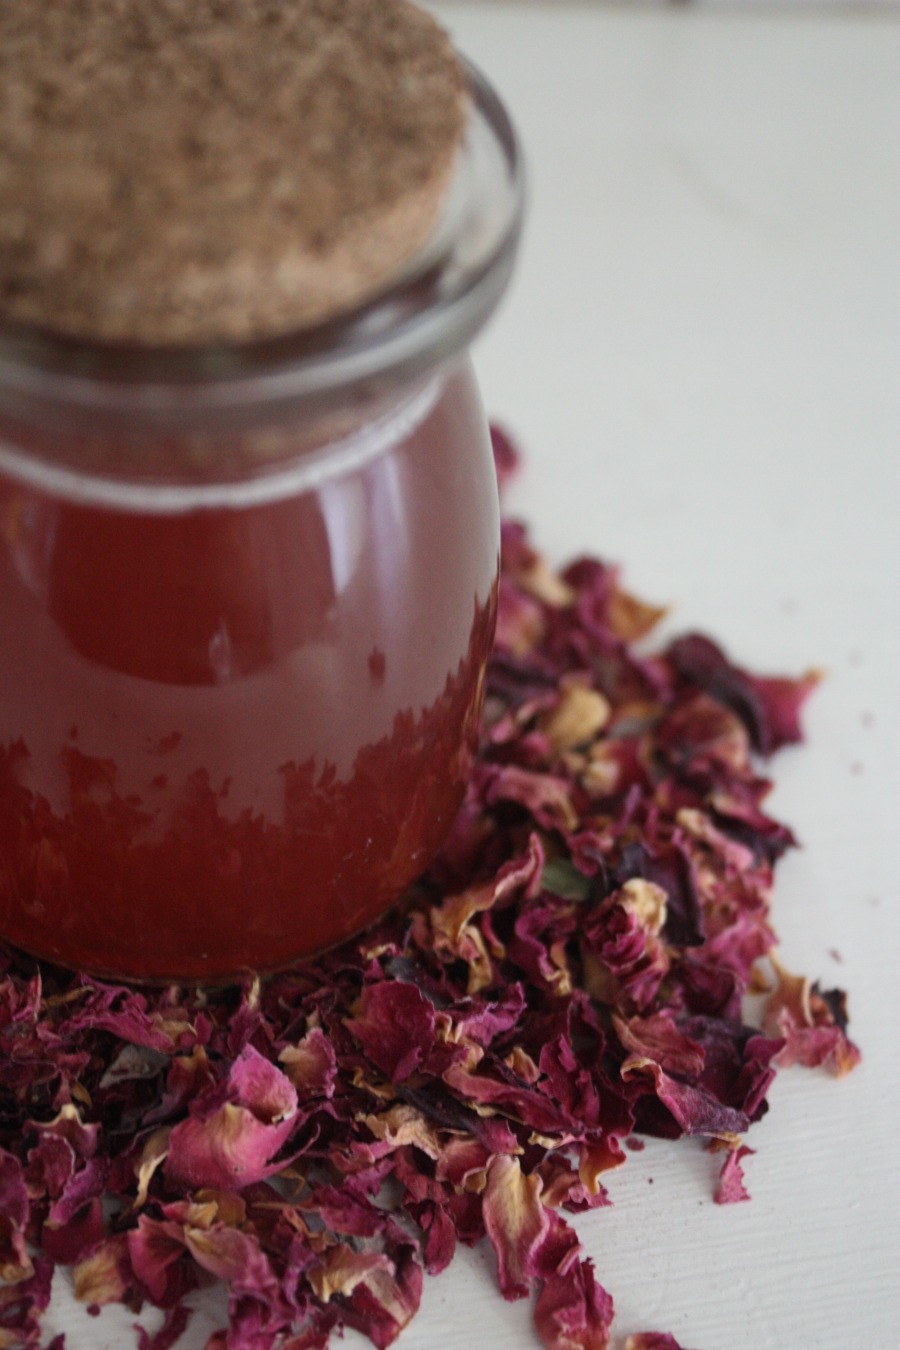 bottle of rose syrup and rose petals